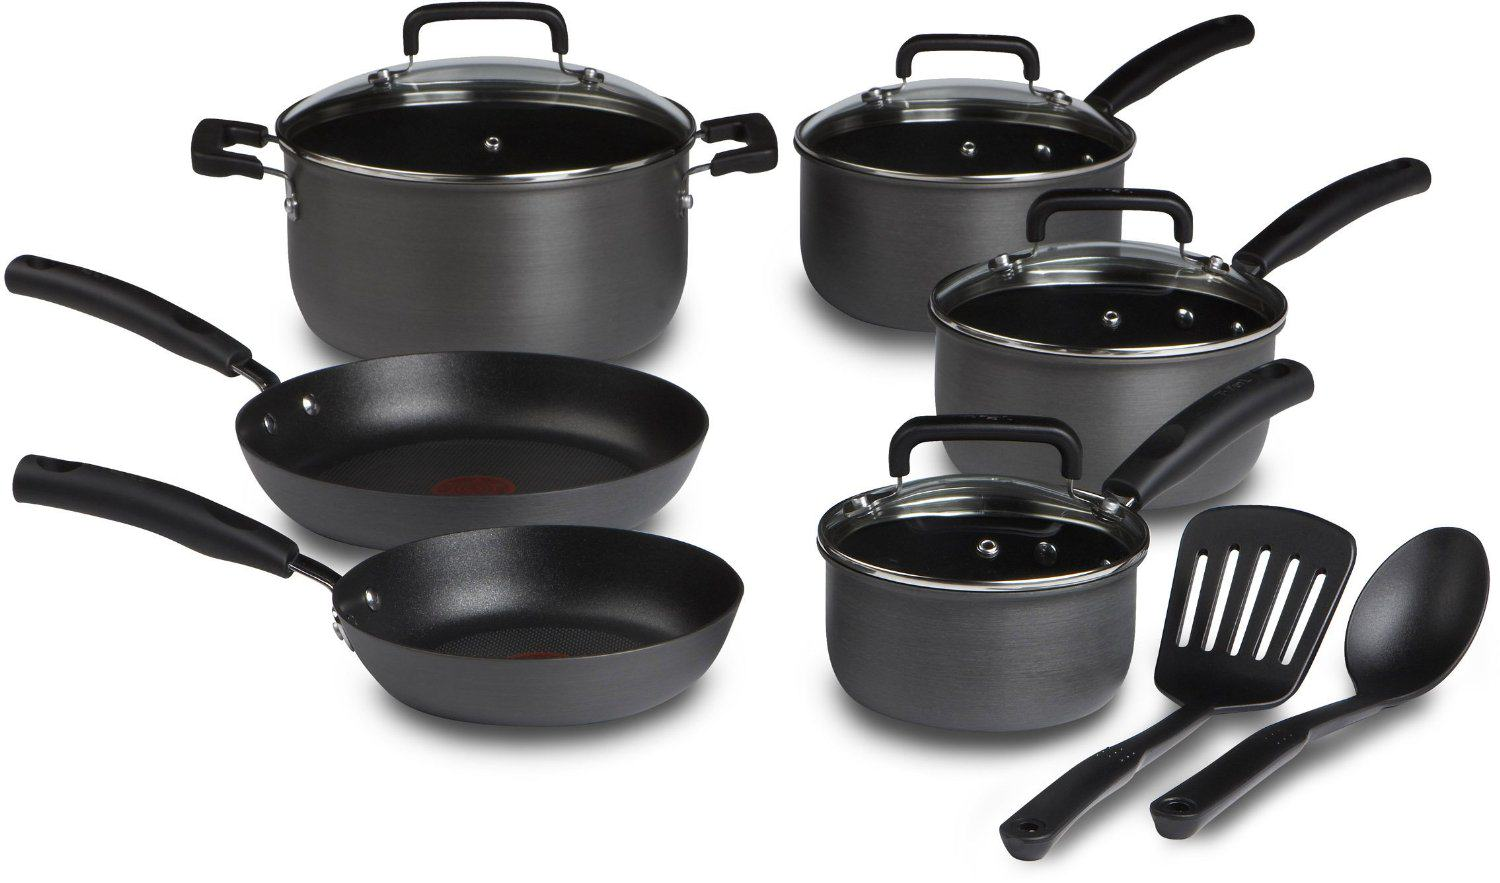 T-Fal Signature Hard Anodized 12 Cookware Piece Set Review